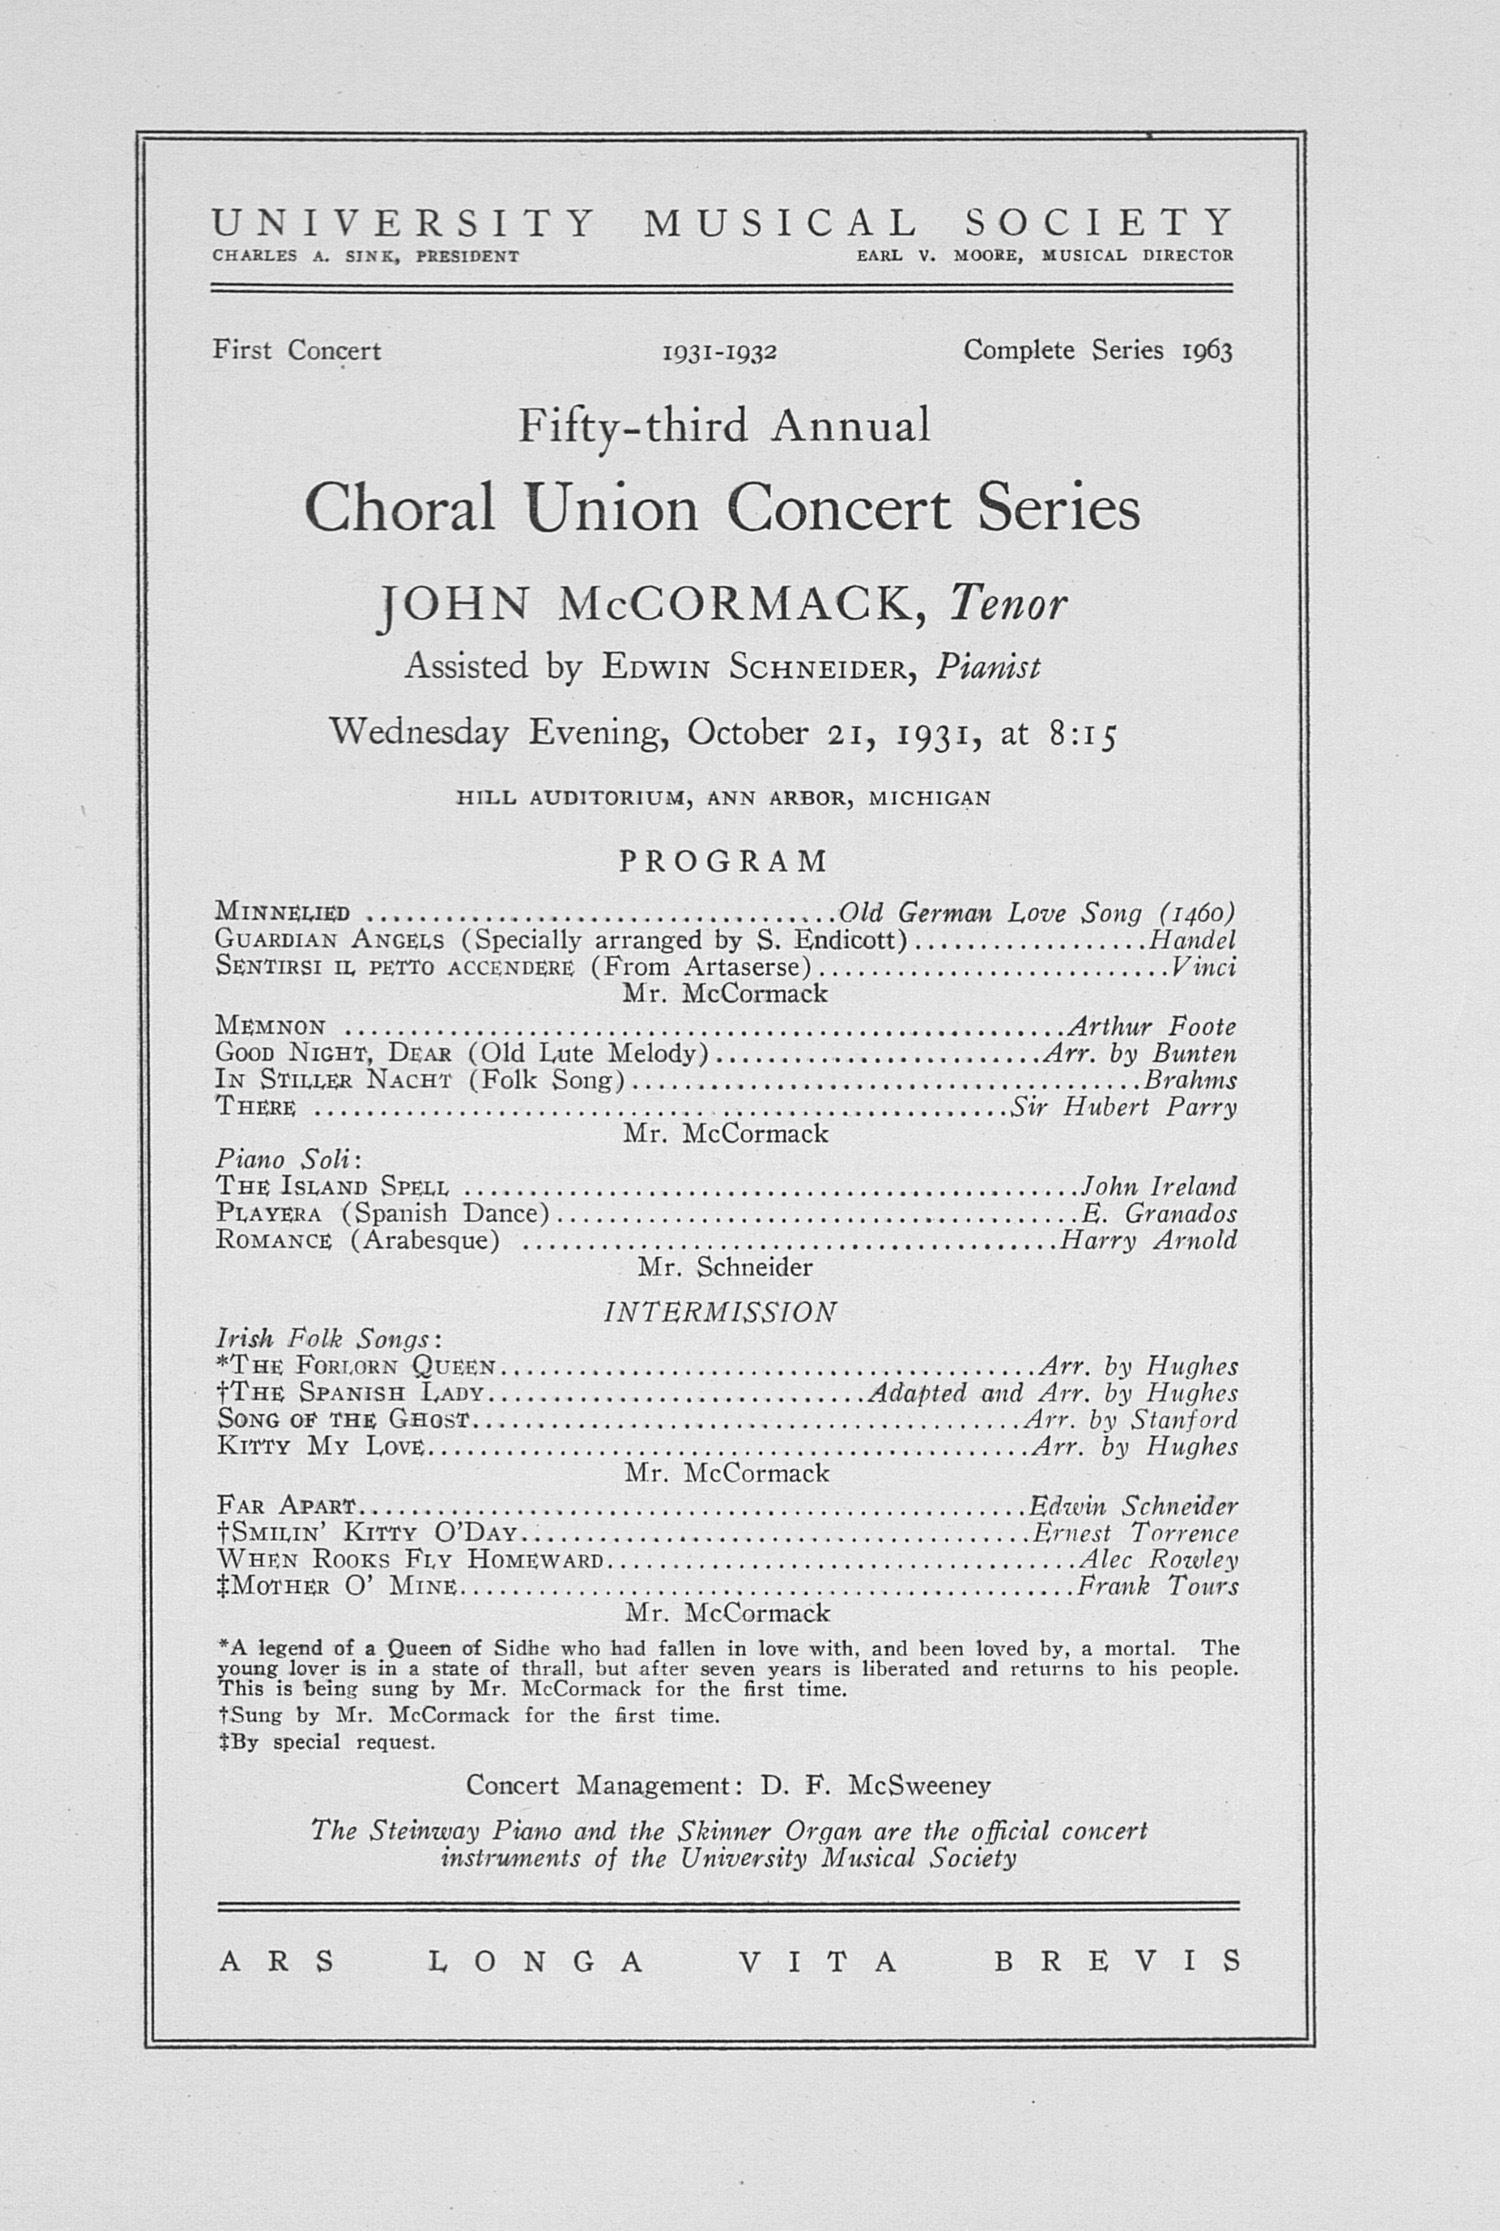 UMS Concert Program, October 21, 1931: Fifty-third Annual Choral Union Concert Series -- John Mccormack image